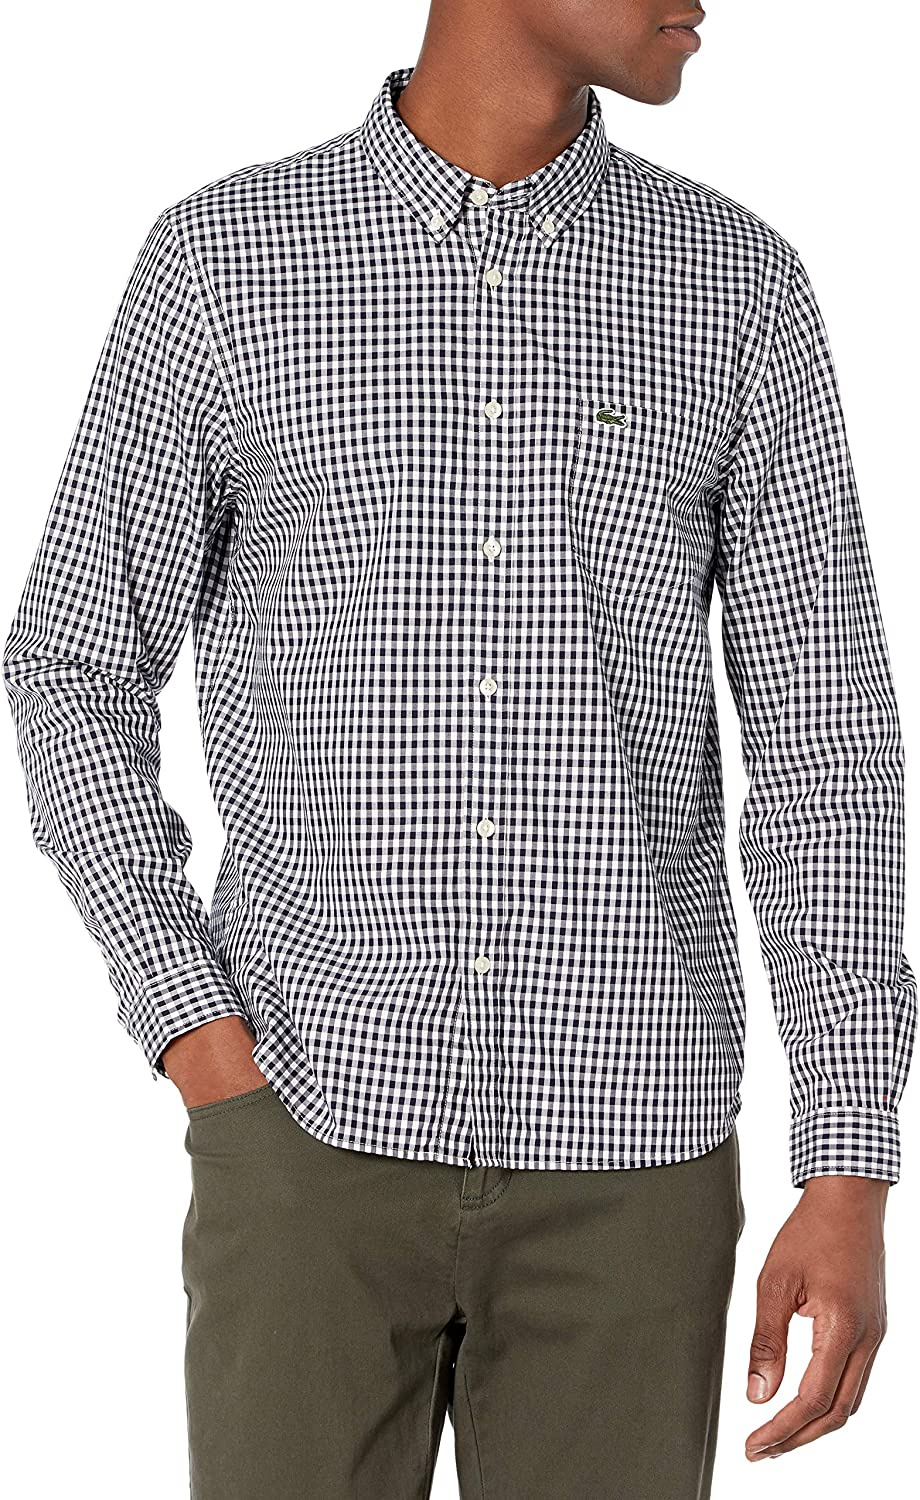 Lacoste Men's Long Sleeve Online limited product Gingham Fit High quality new Regular Poplin Shirt